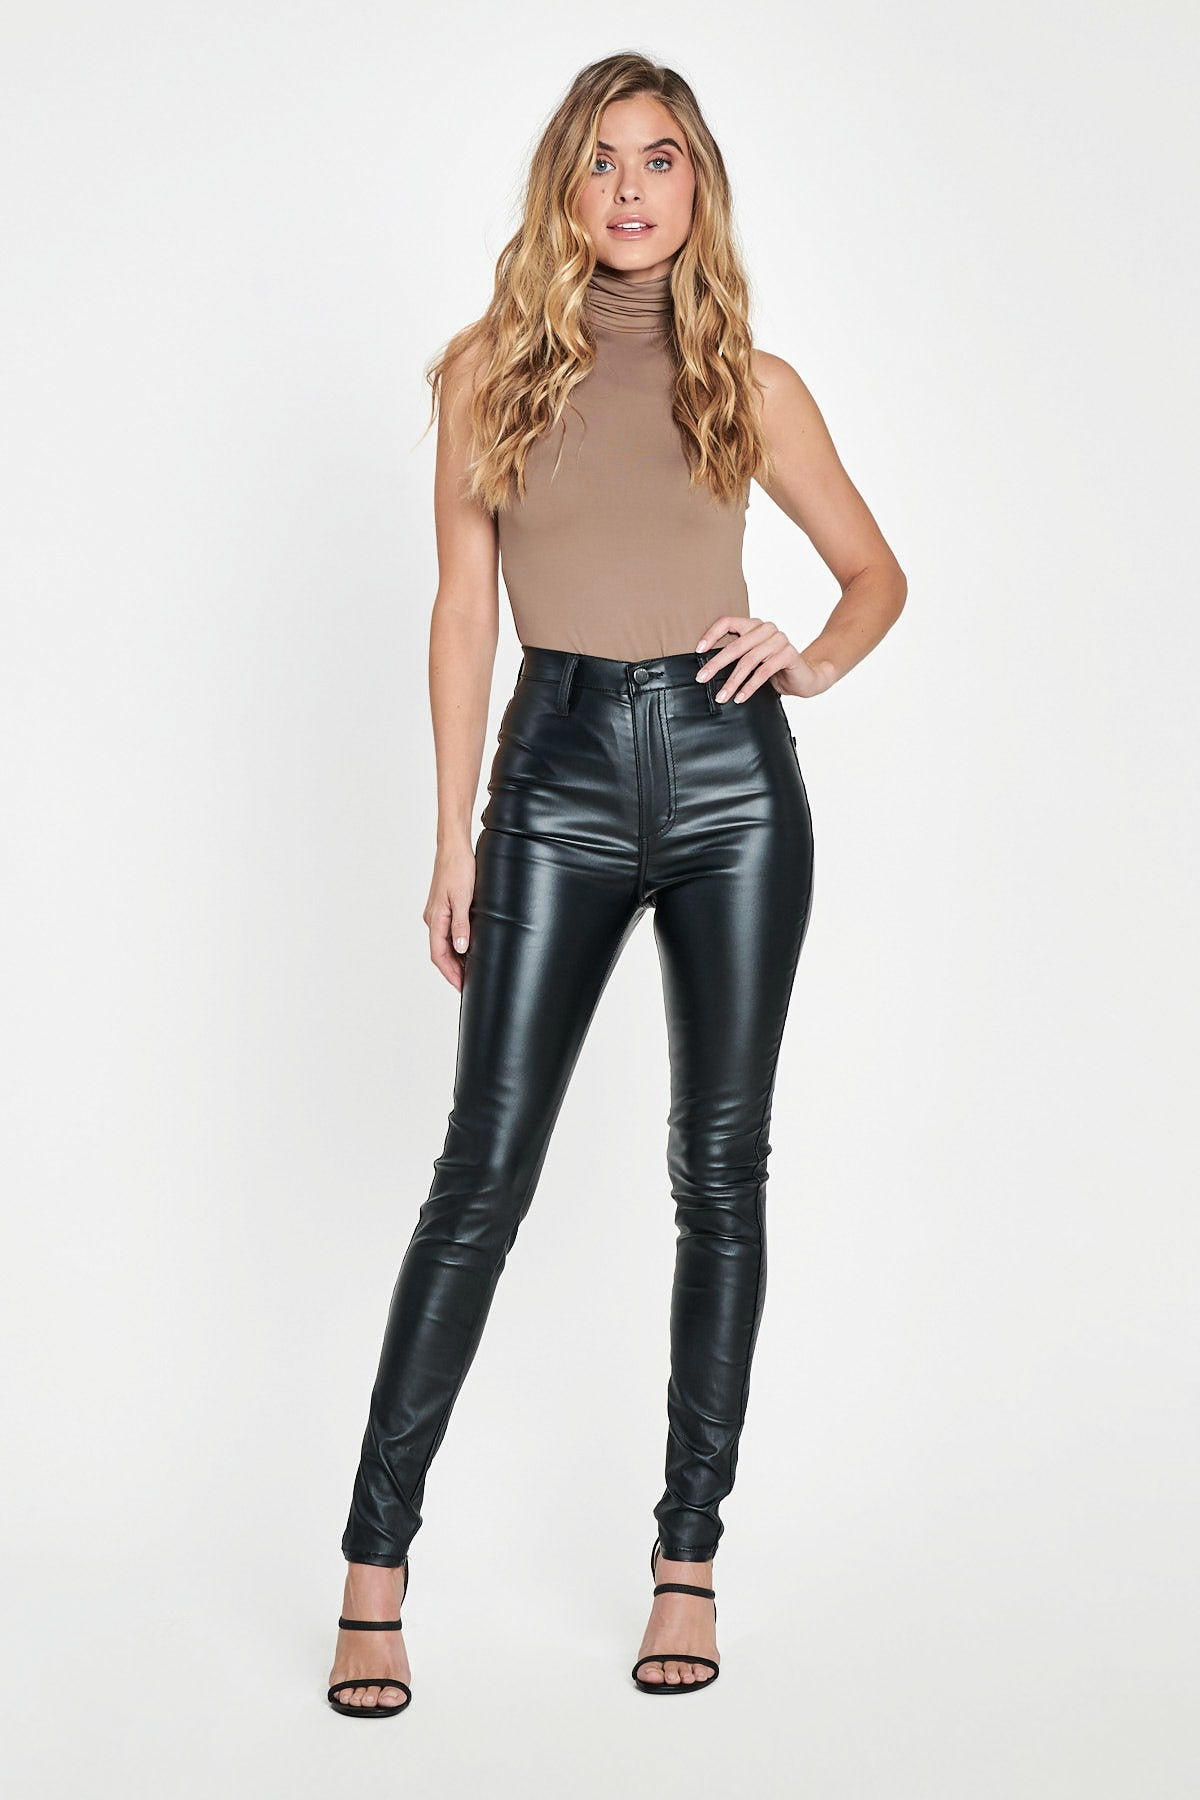 Banging Black Faux Leather Skinny Jean Pants